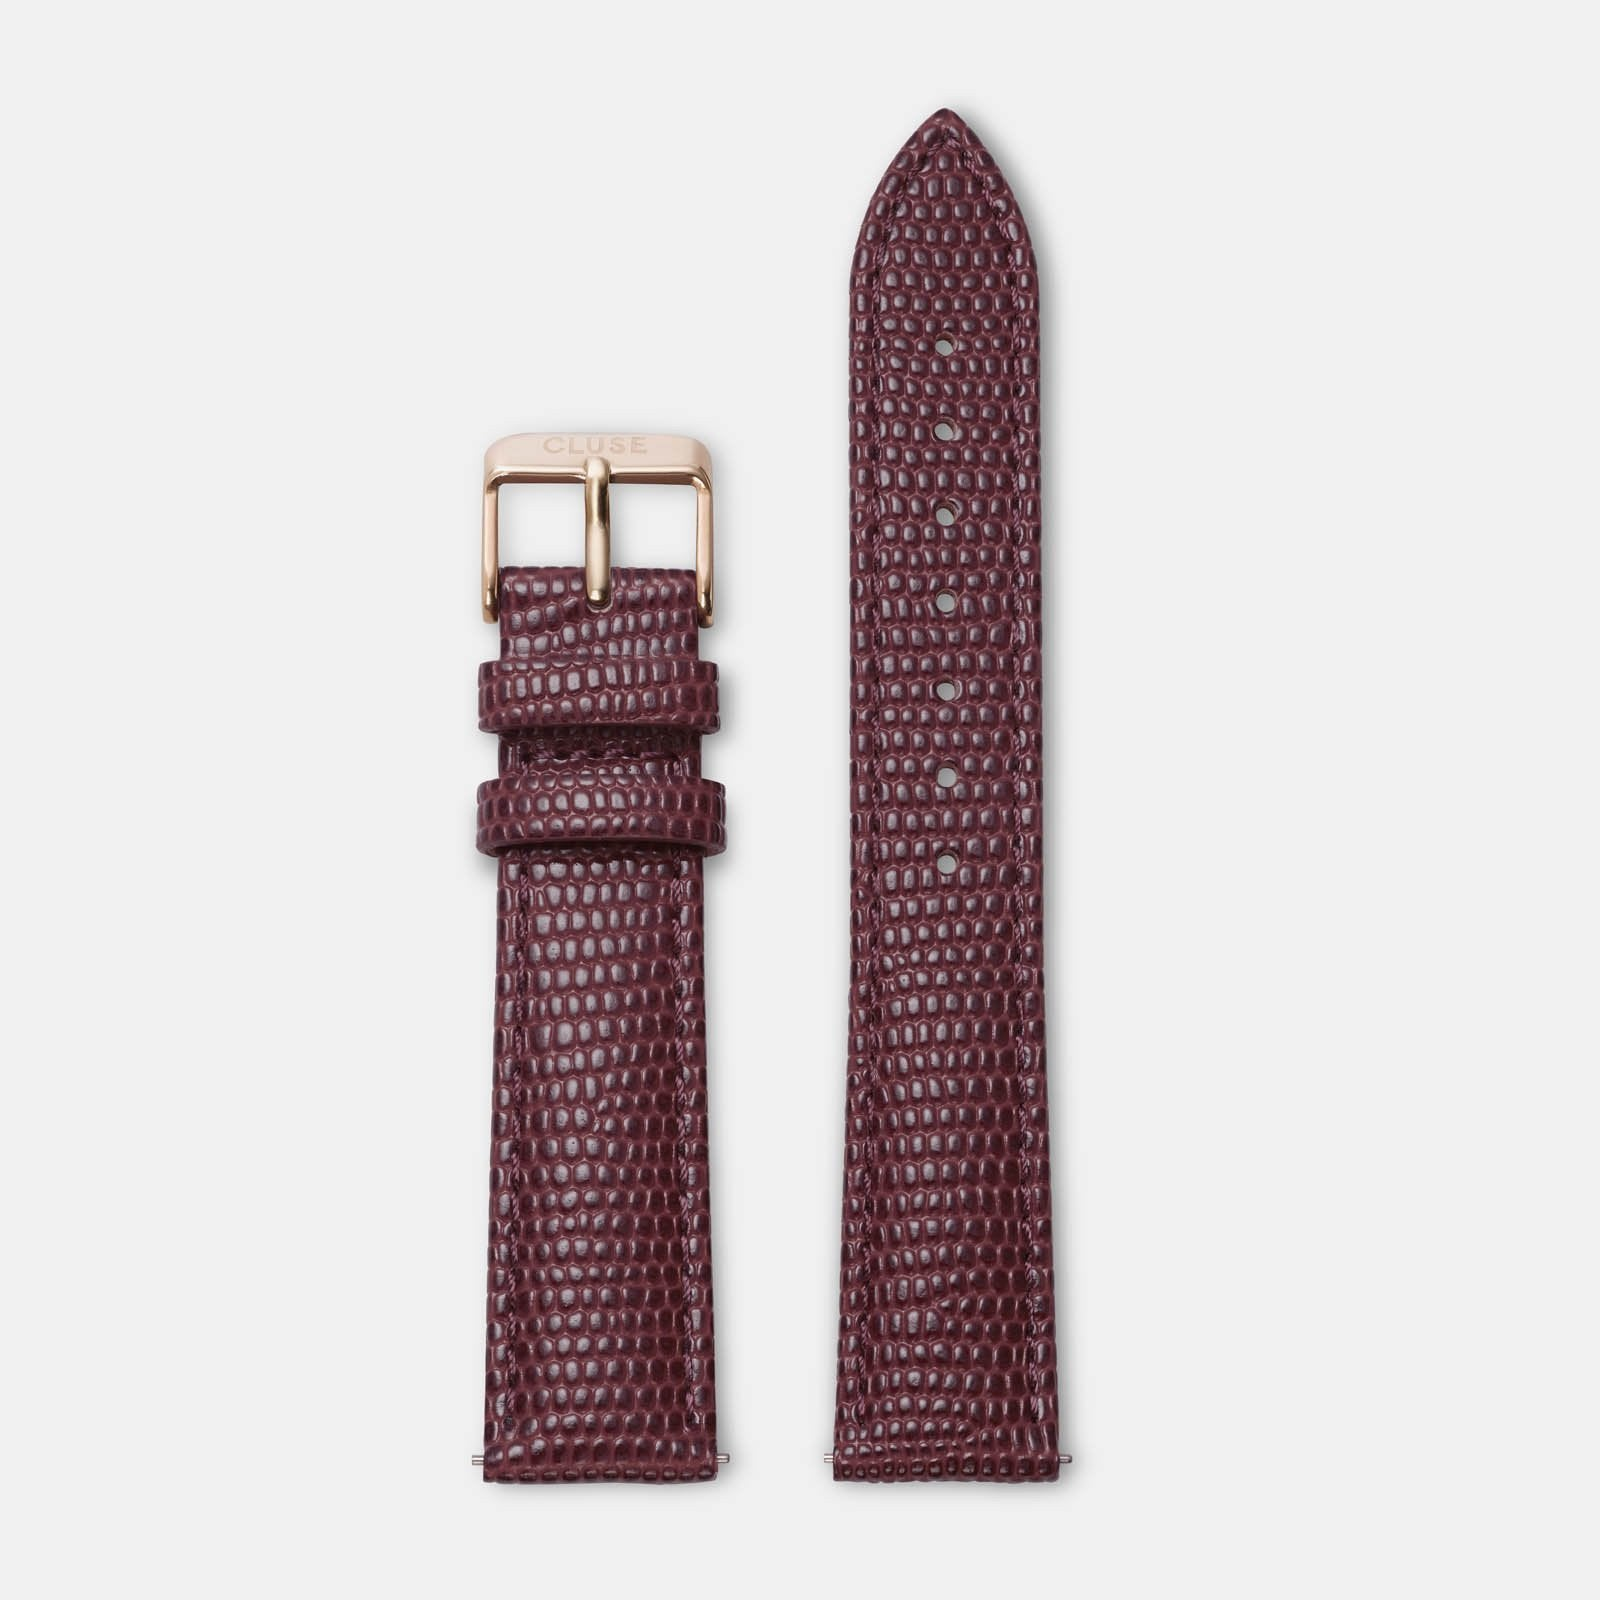 CLUSE 18 mm Strap Burgundy Lizard/Rose Gold CLS080 - Cinturino